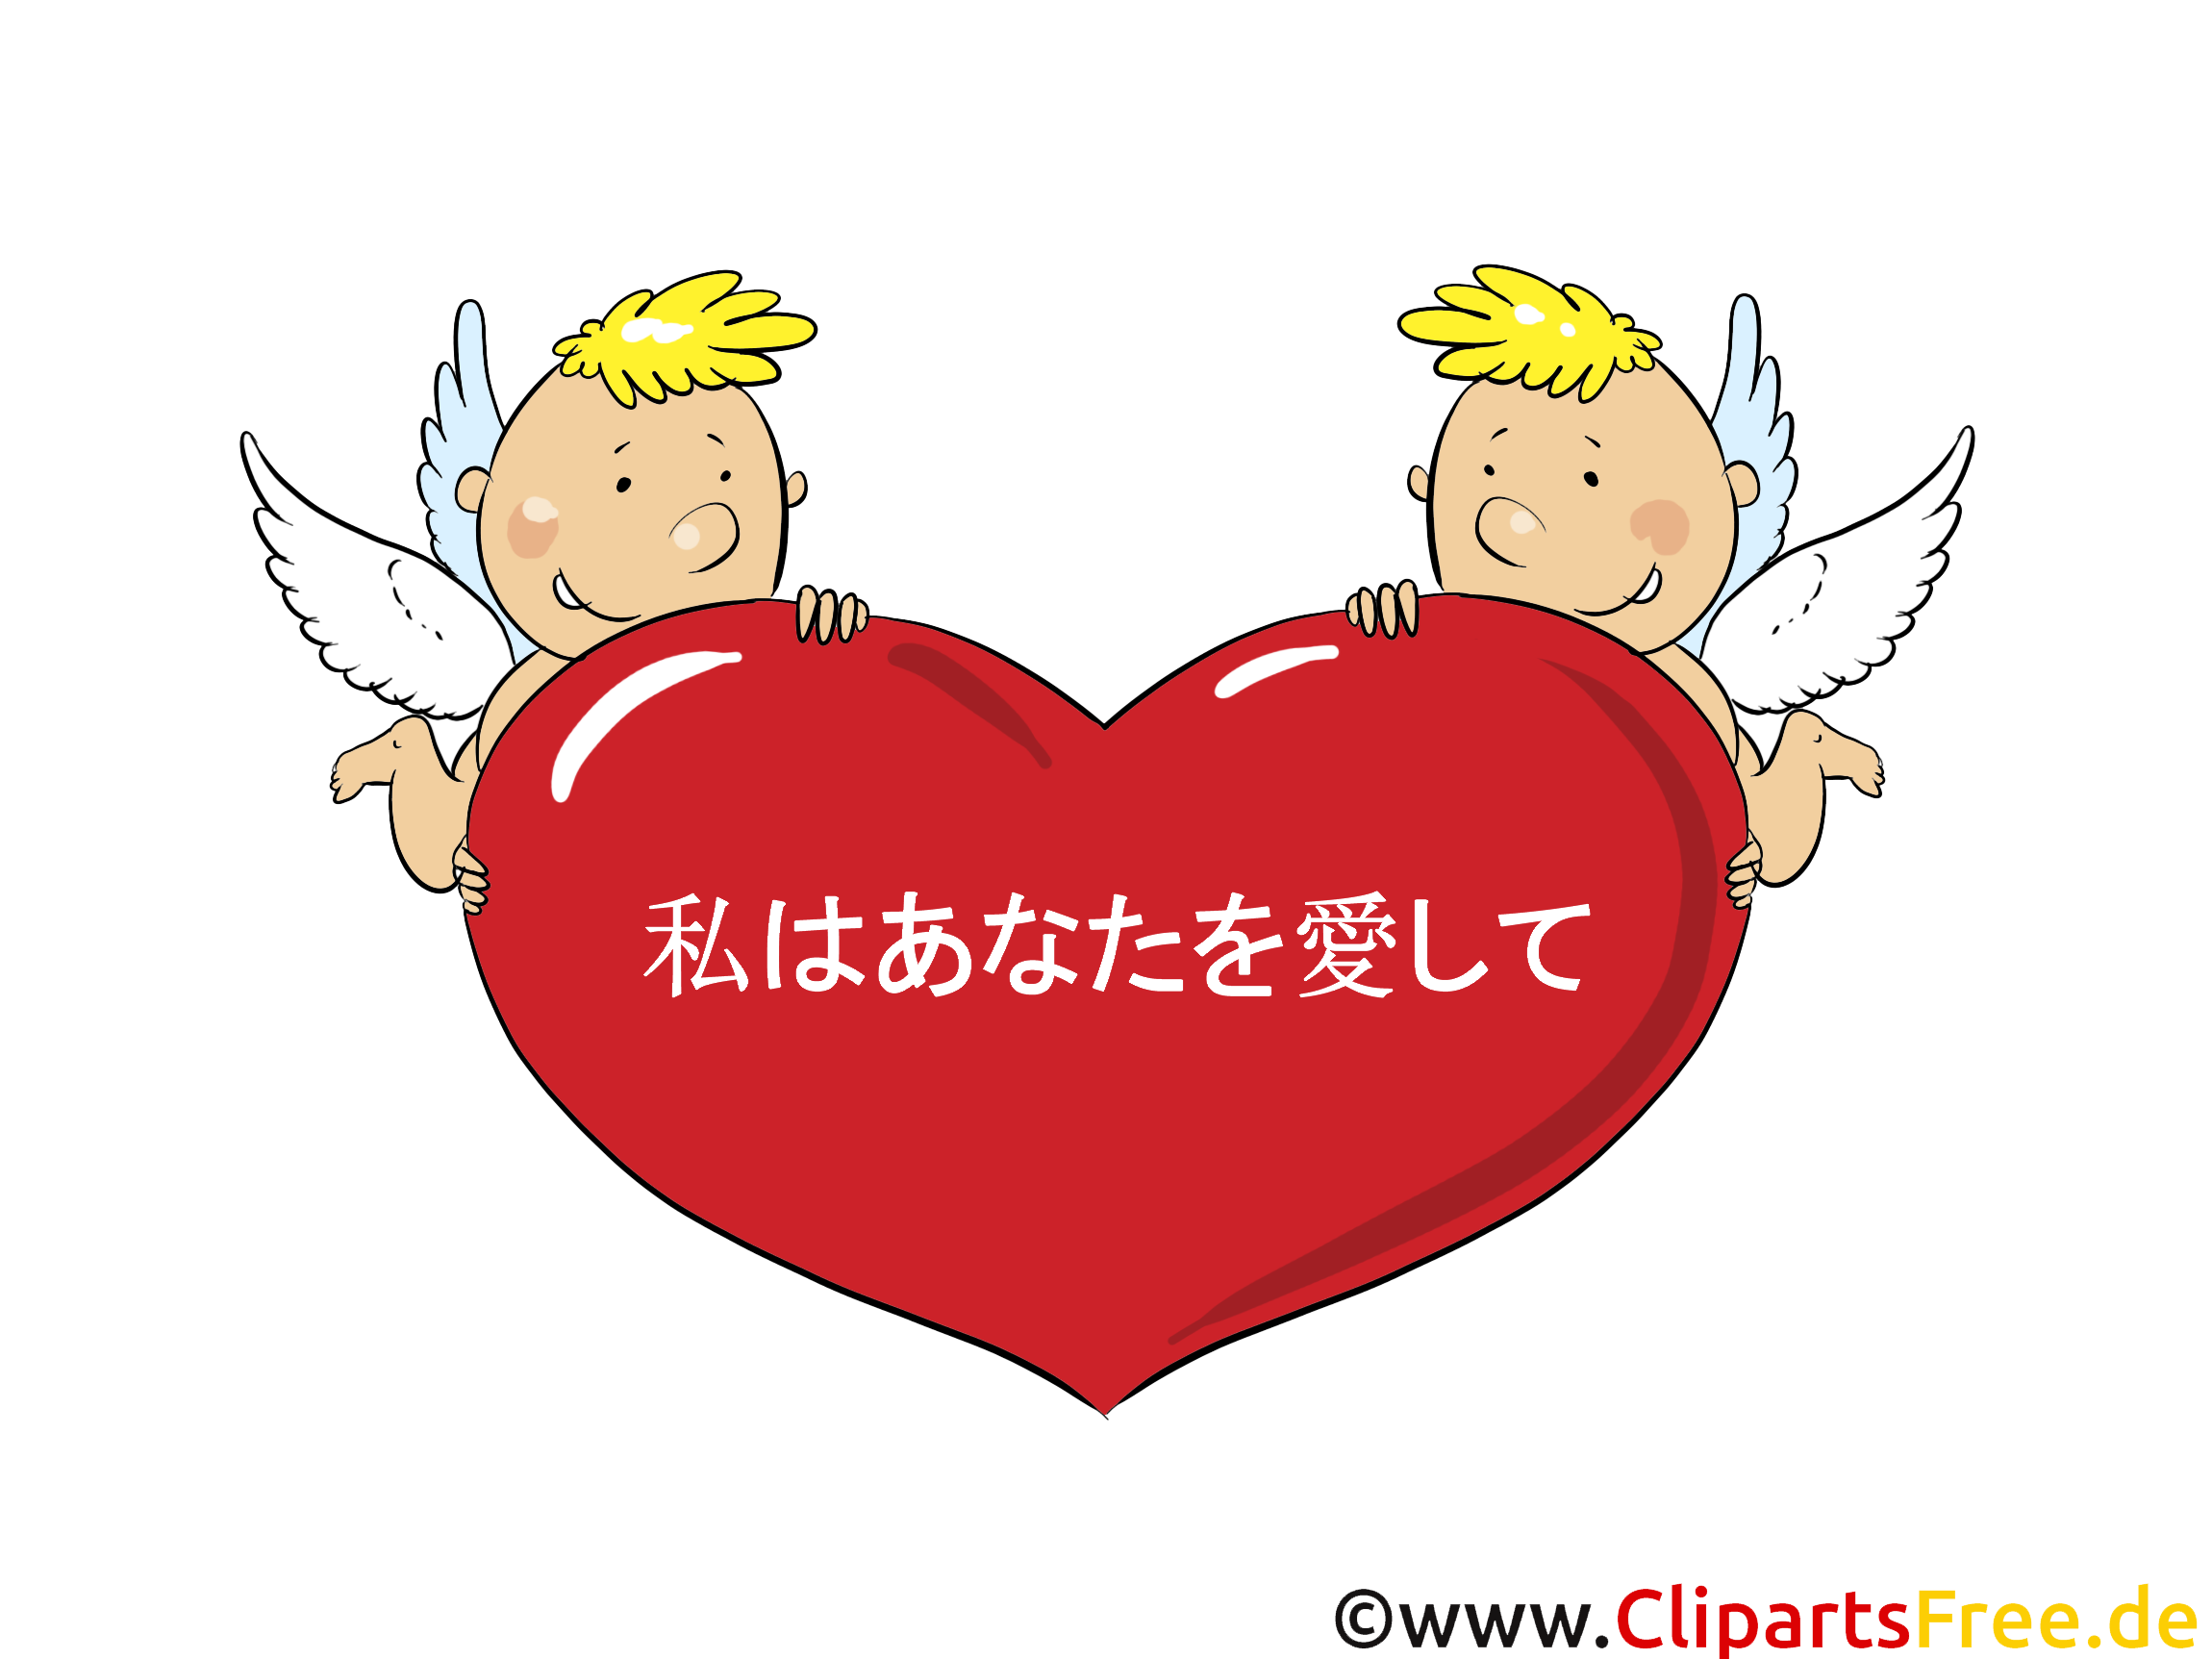 Clipart ich liebe dich graphic library library Ich liebe dich auf Japanisch Liebeskarte, Liebeserklärung ... graphic library library